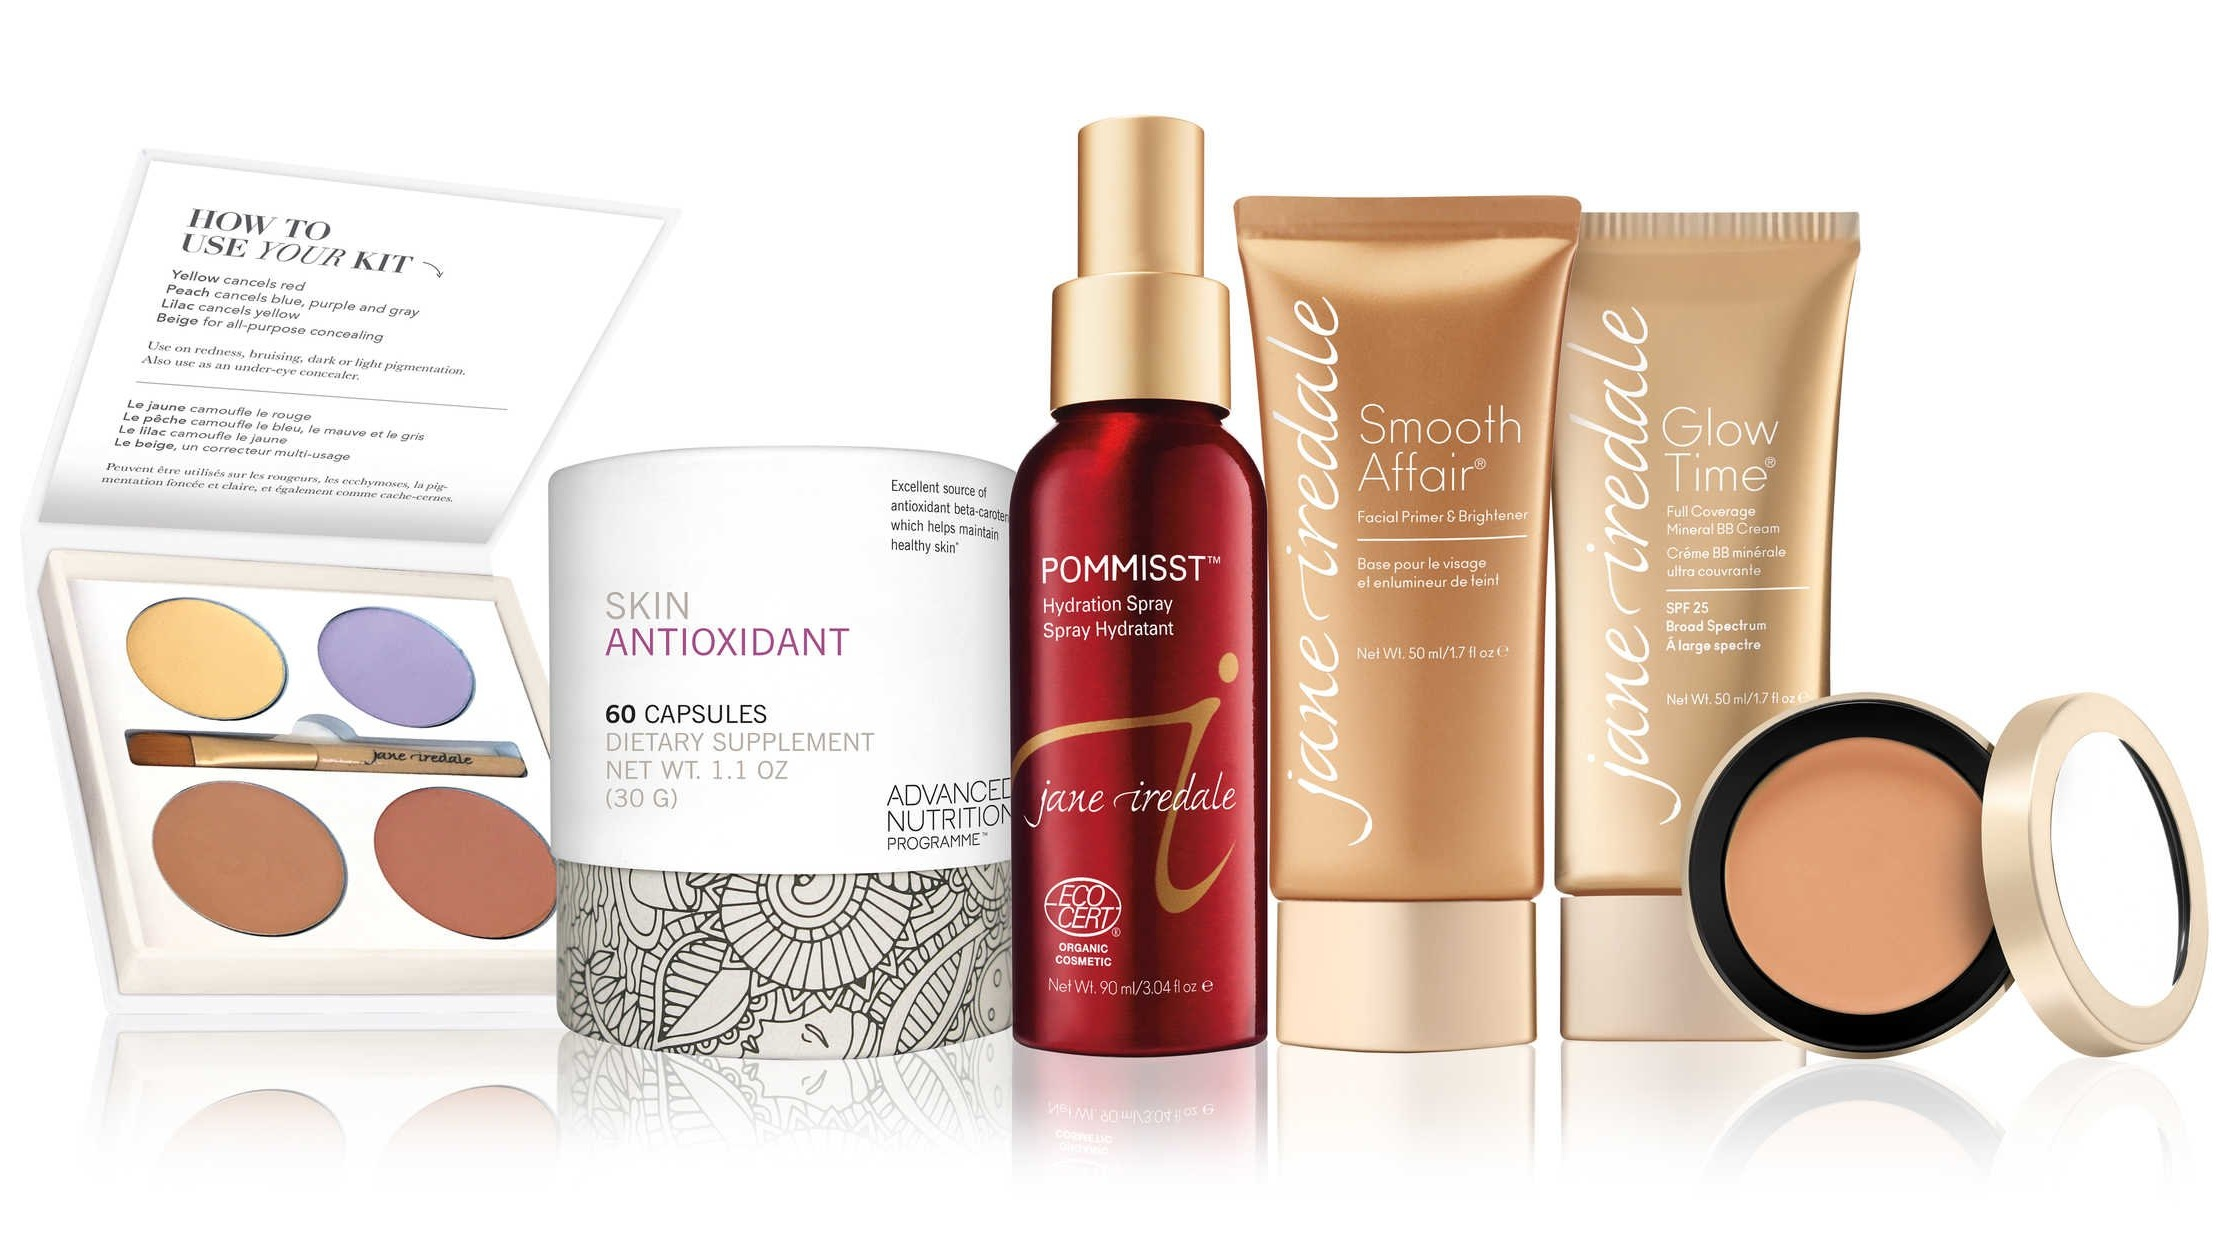 Jane Iredale - makeup and skin care